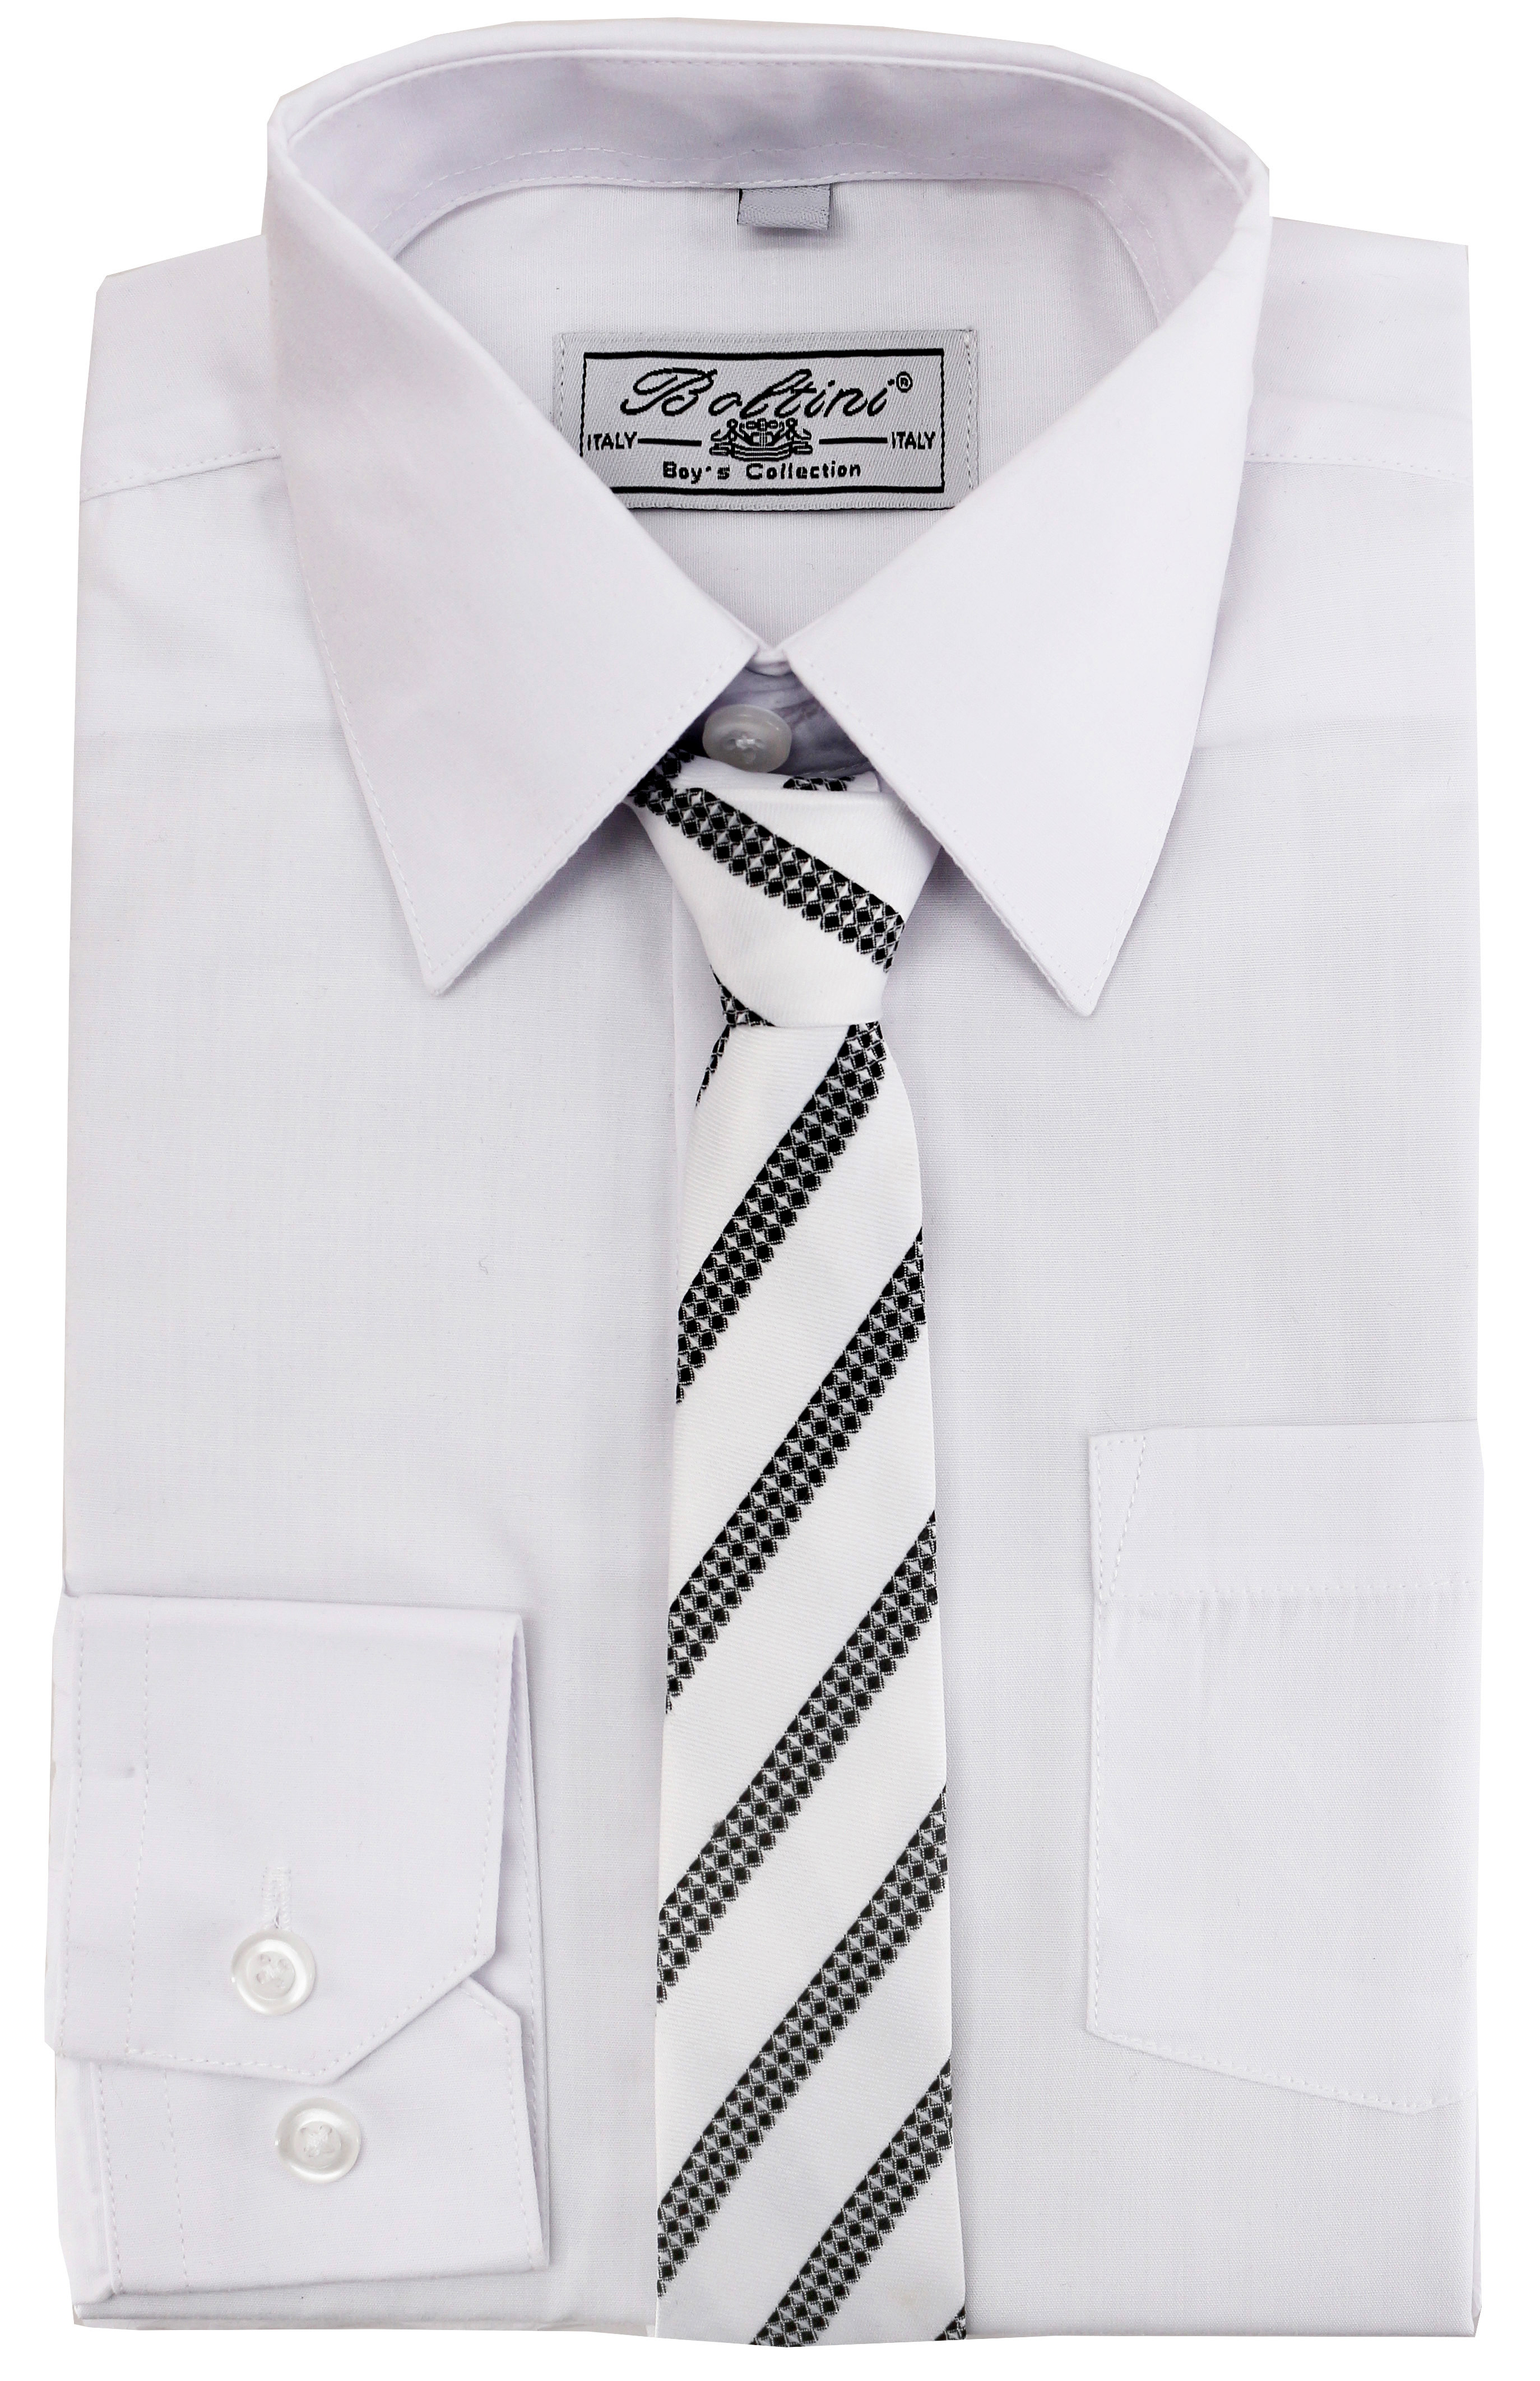 Boltini Italy - Boltini Italy Boys Kids Toddlers Long Sleeve Dress Shirt Set with Matching Tie (White, 7) - Walmart.com